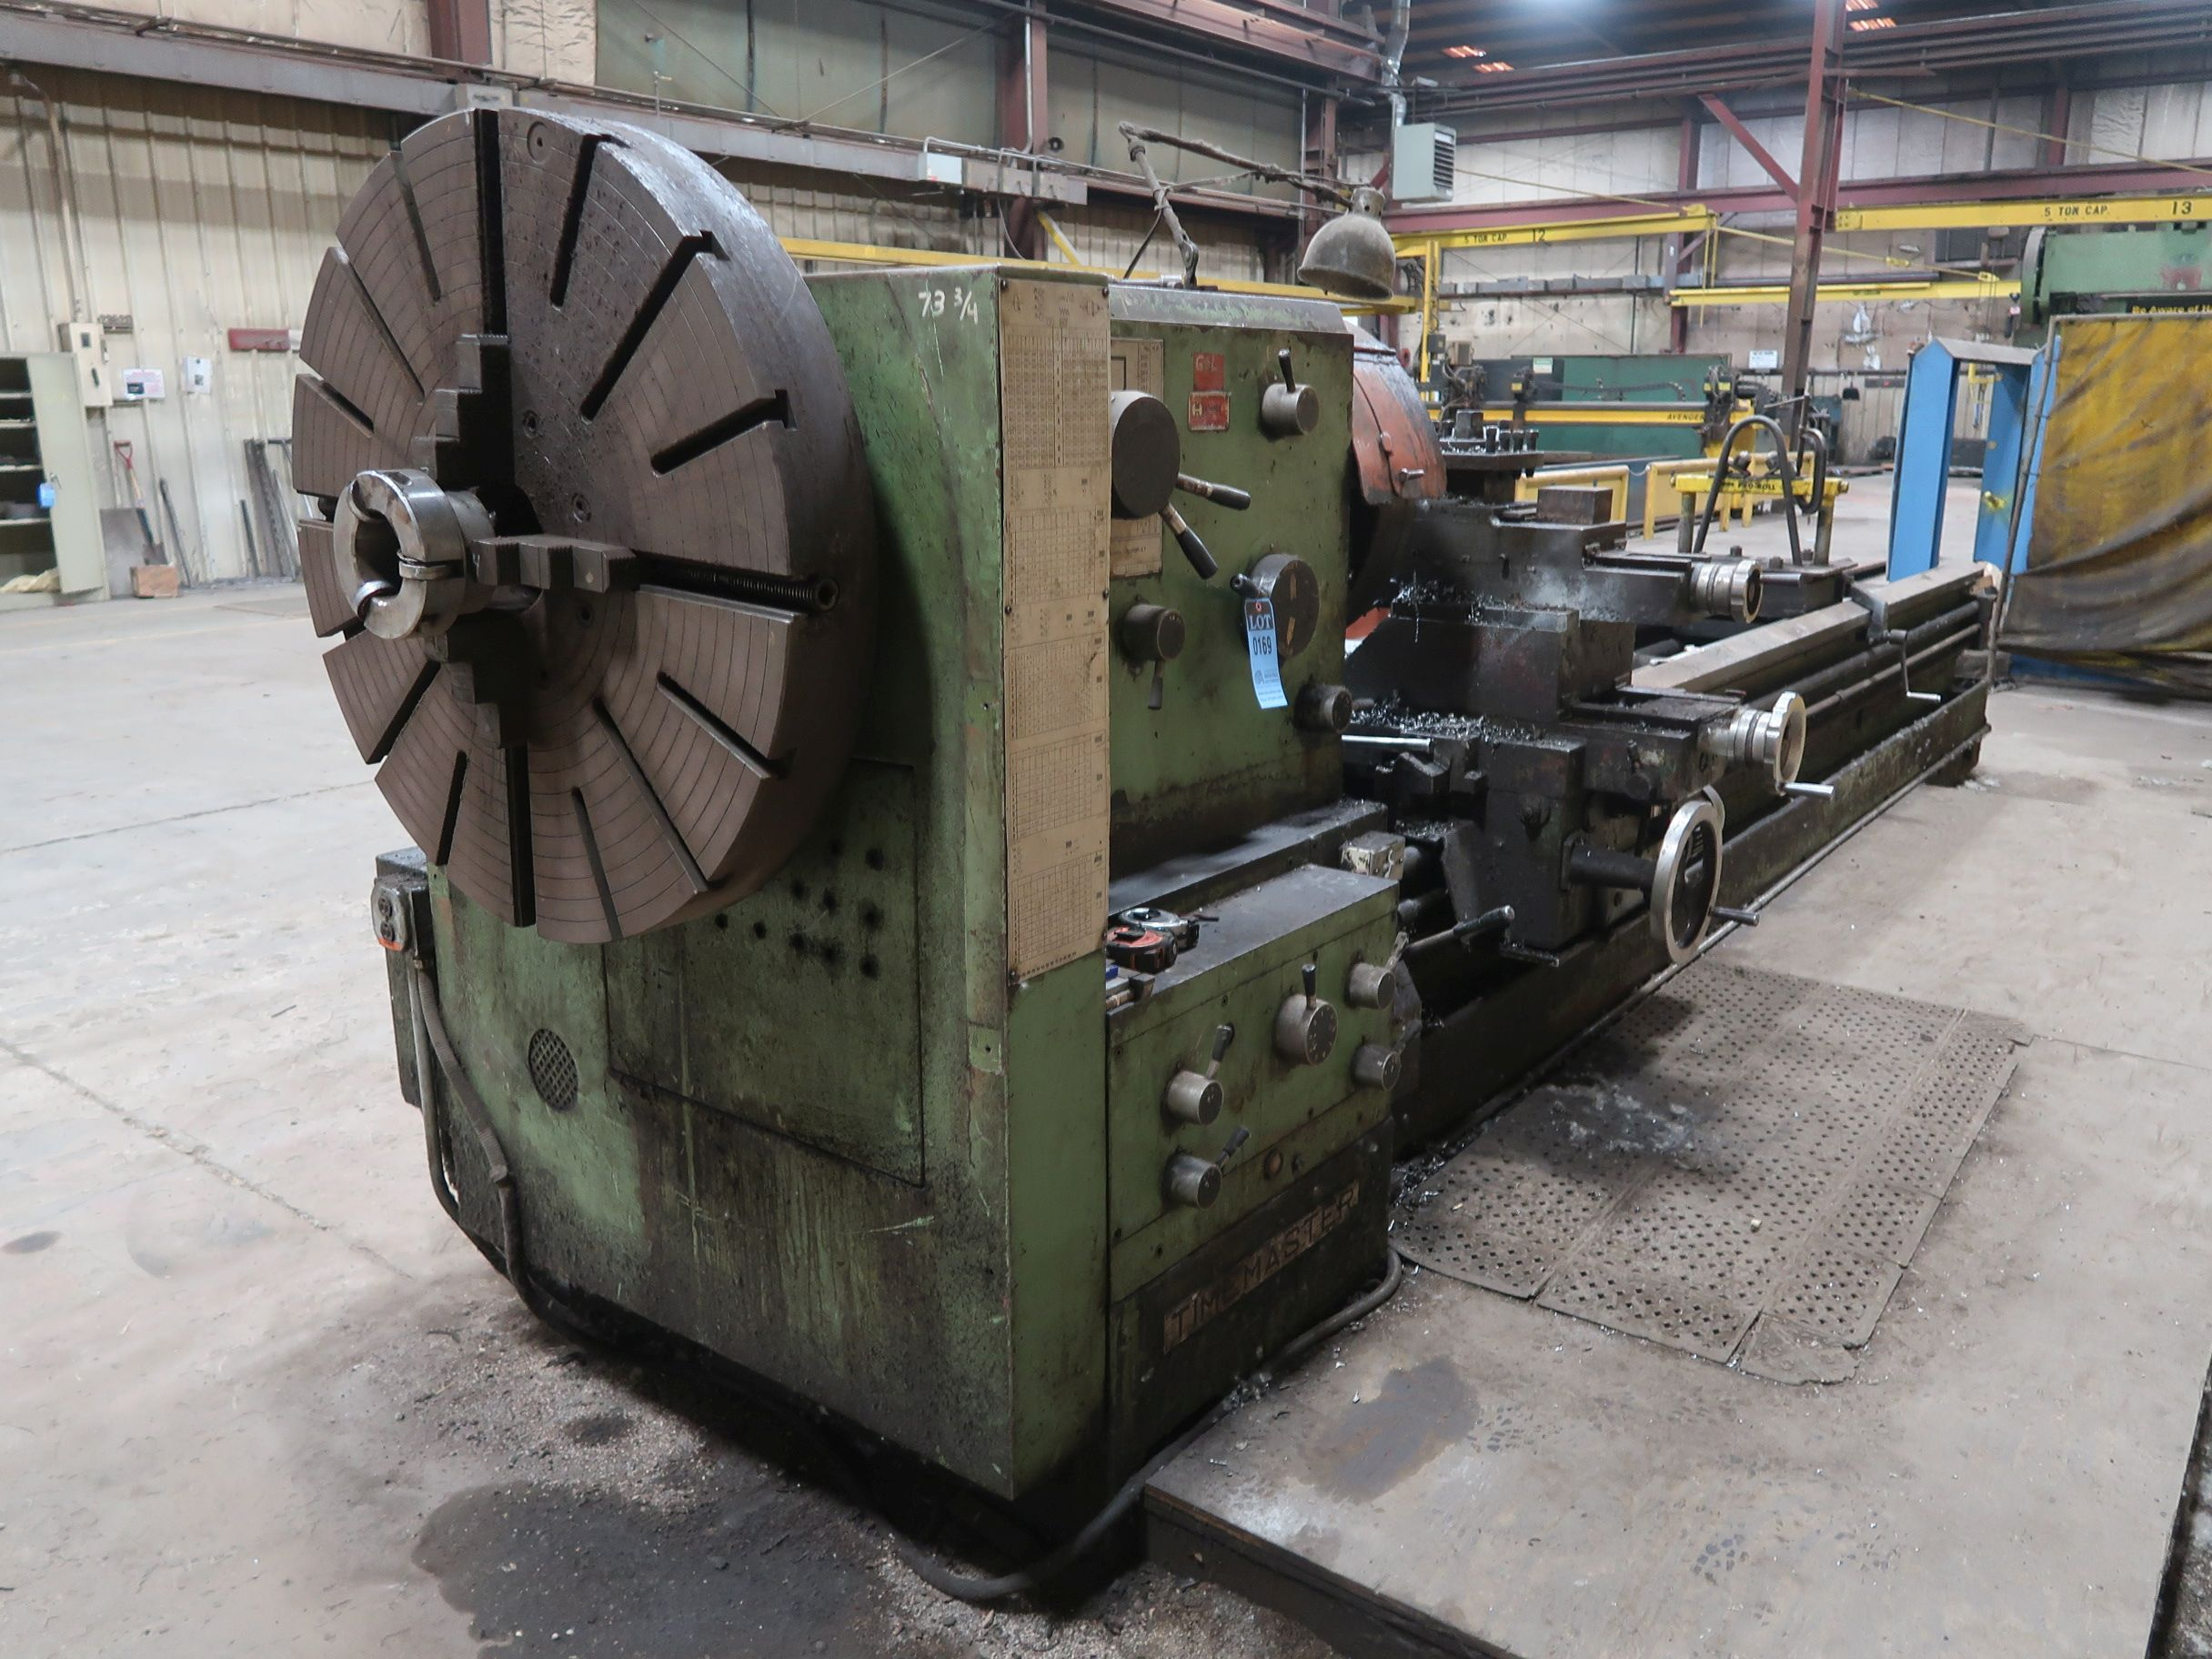 """40"""" X 160"""" GRUTZPE TIMEMASTER MODEL 4000/500 DOUBLE CHUCK ENGINE LATHE; SPEEDS TO 500 RPM, APPROX. - Image 4 of 14"""